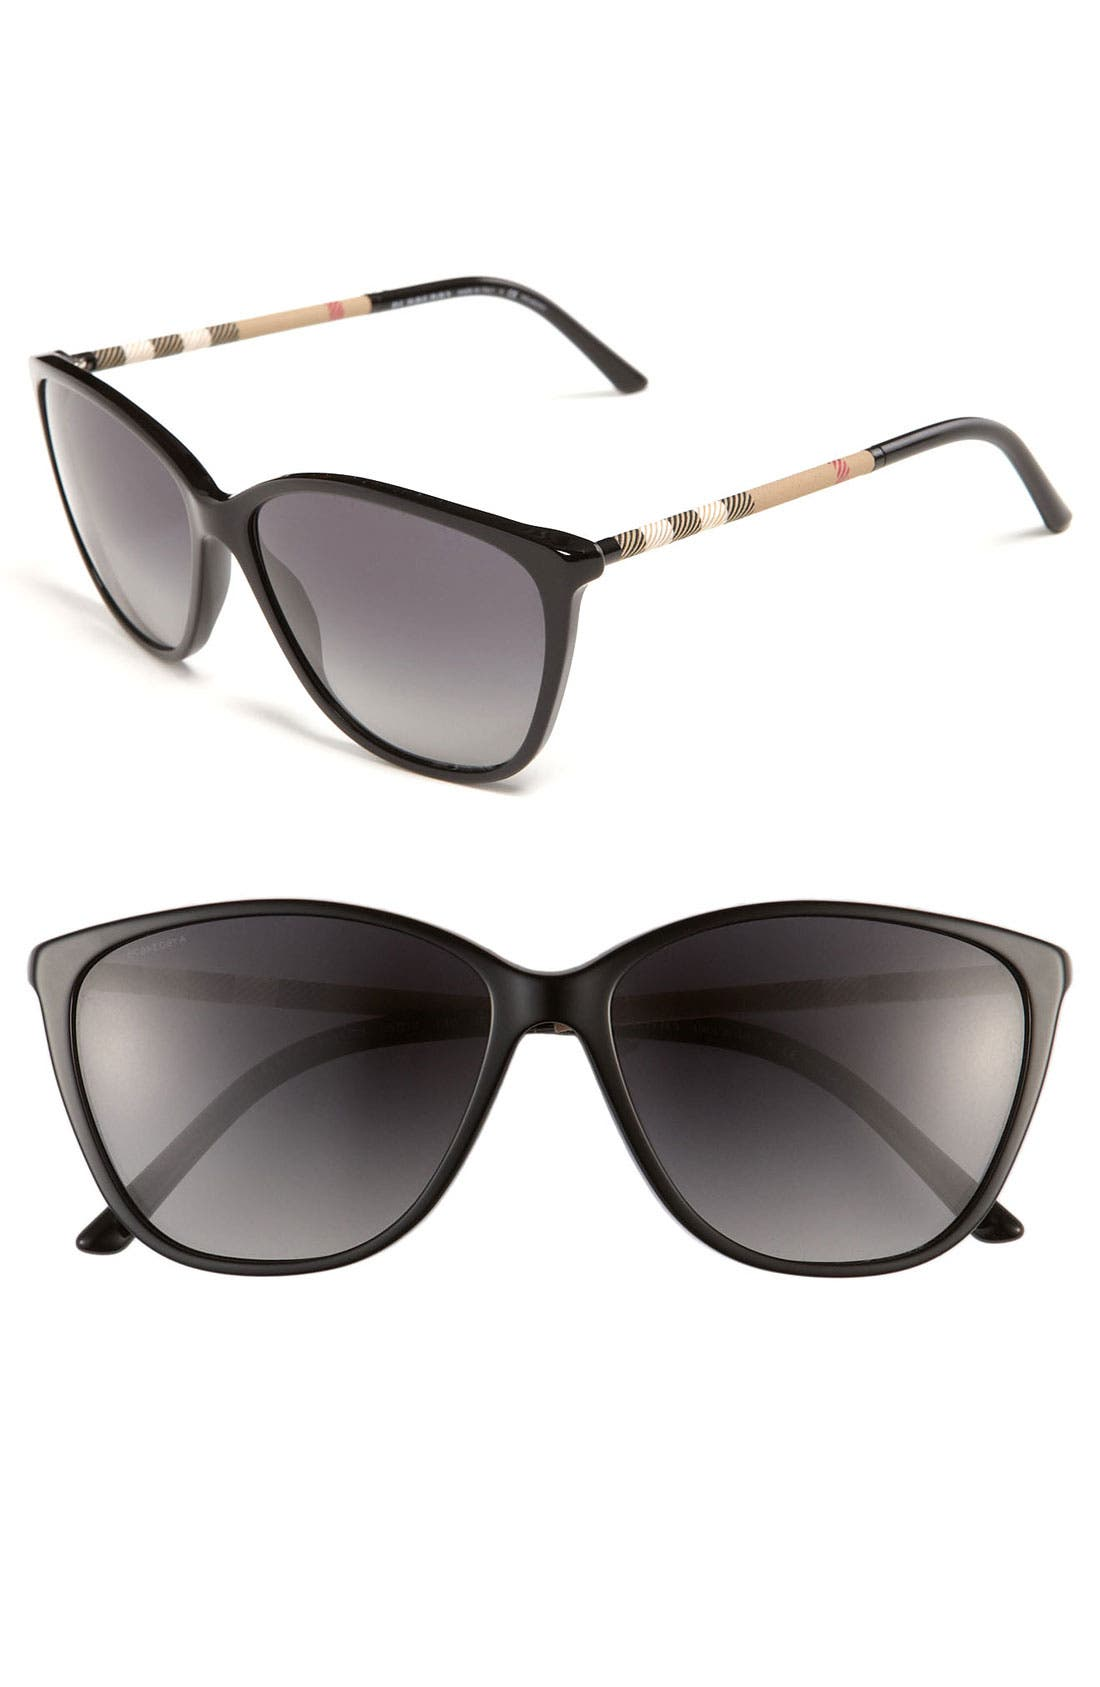 Main Image - Burberry Retro 58mm Polarized Sunglasses